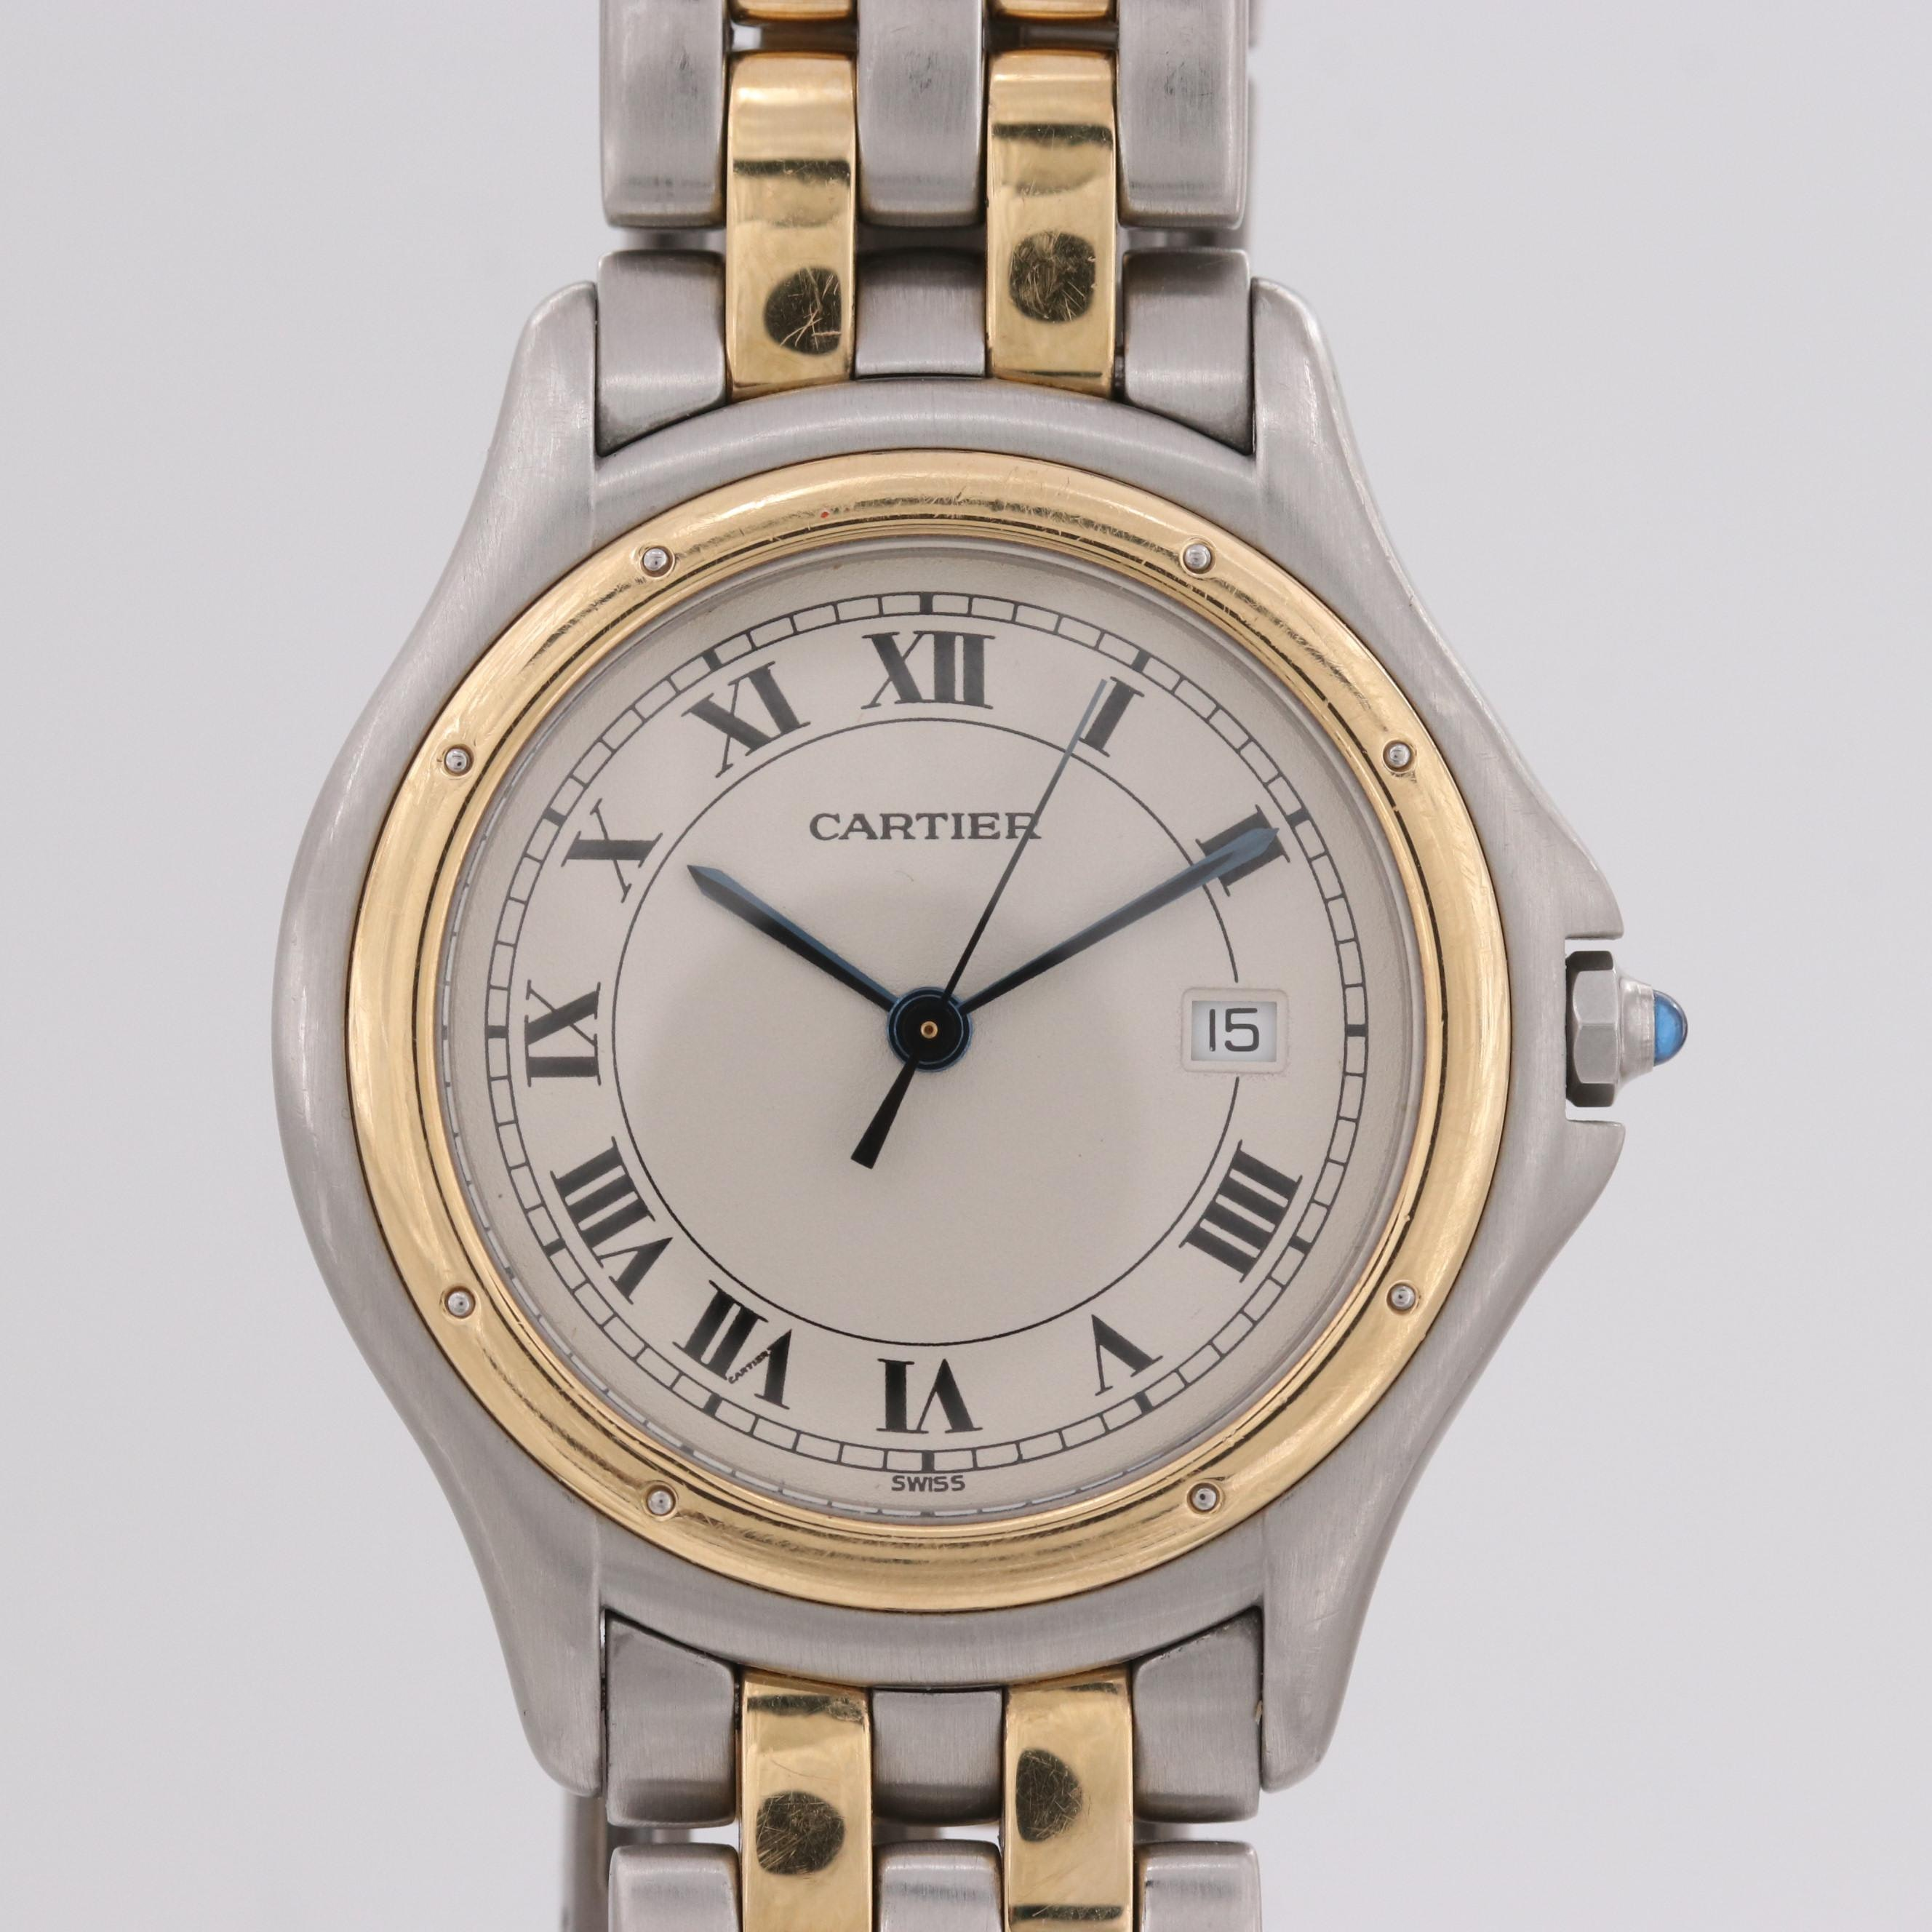 Cartier Cougar Panthere 18K Yellow Gold and Stainless Steel Wristwatch